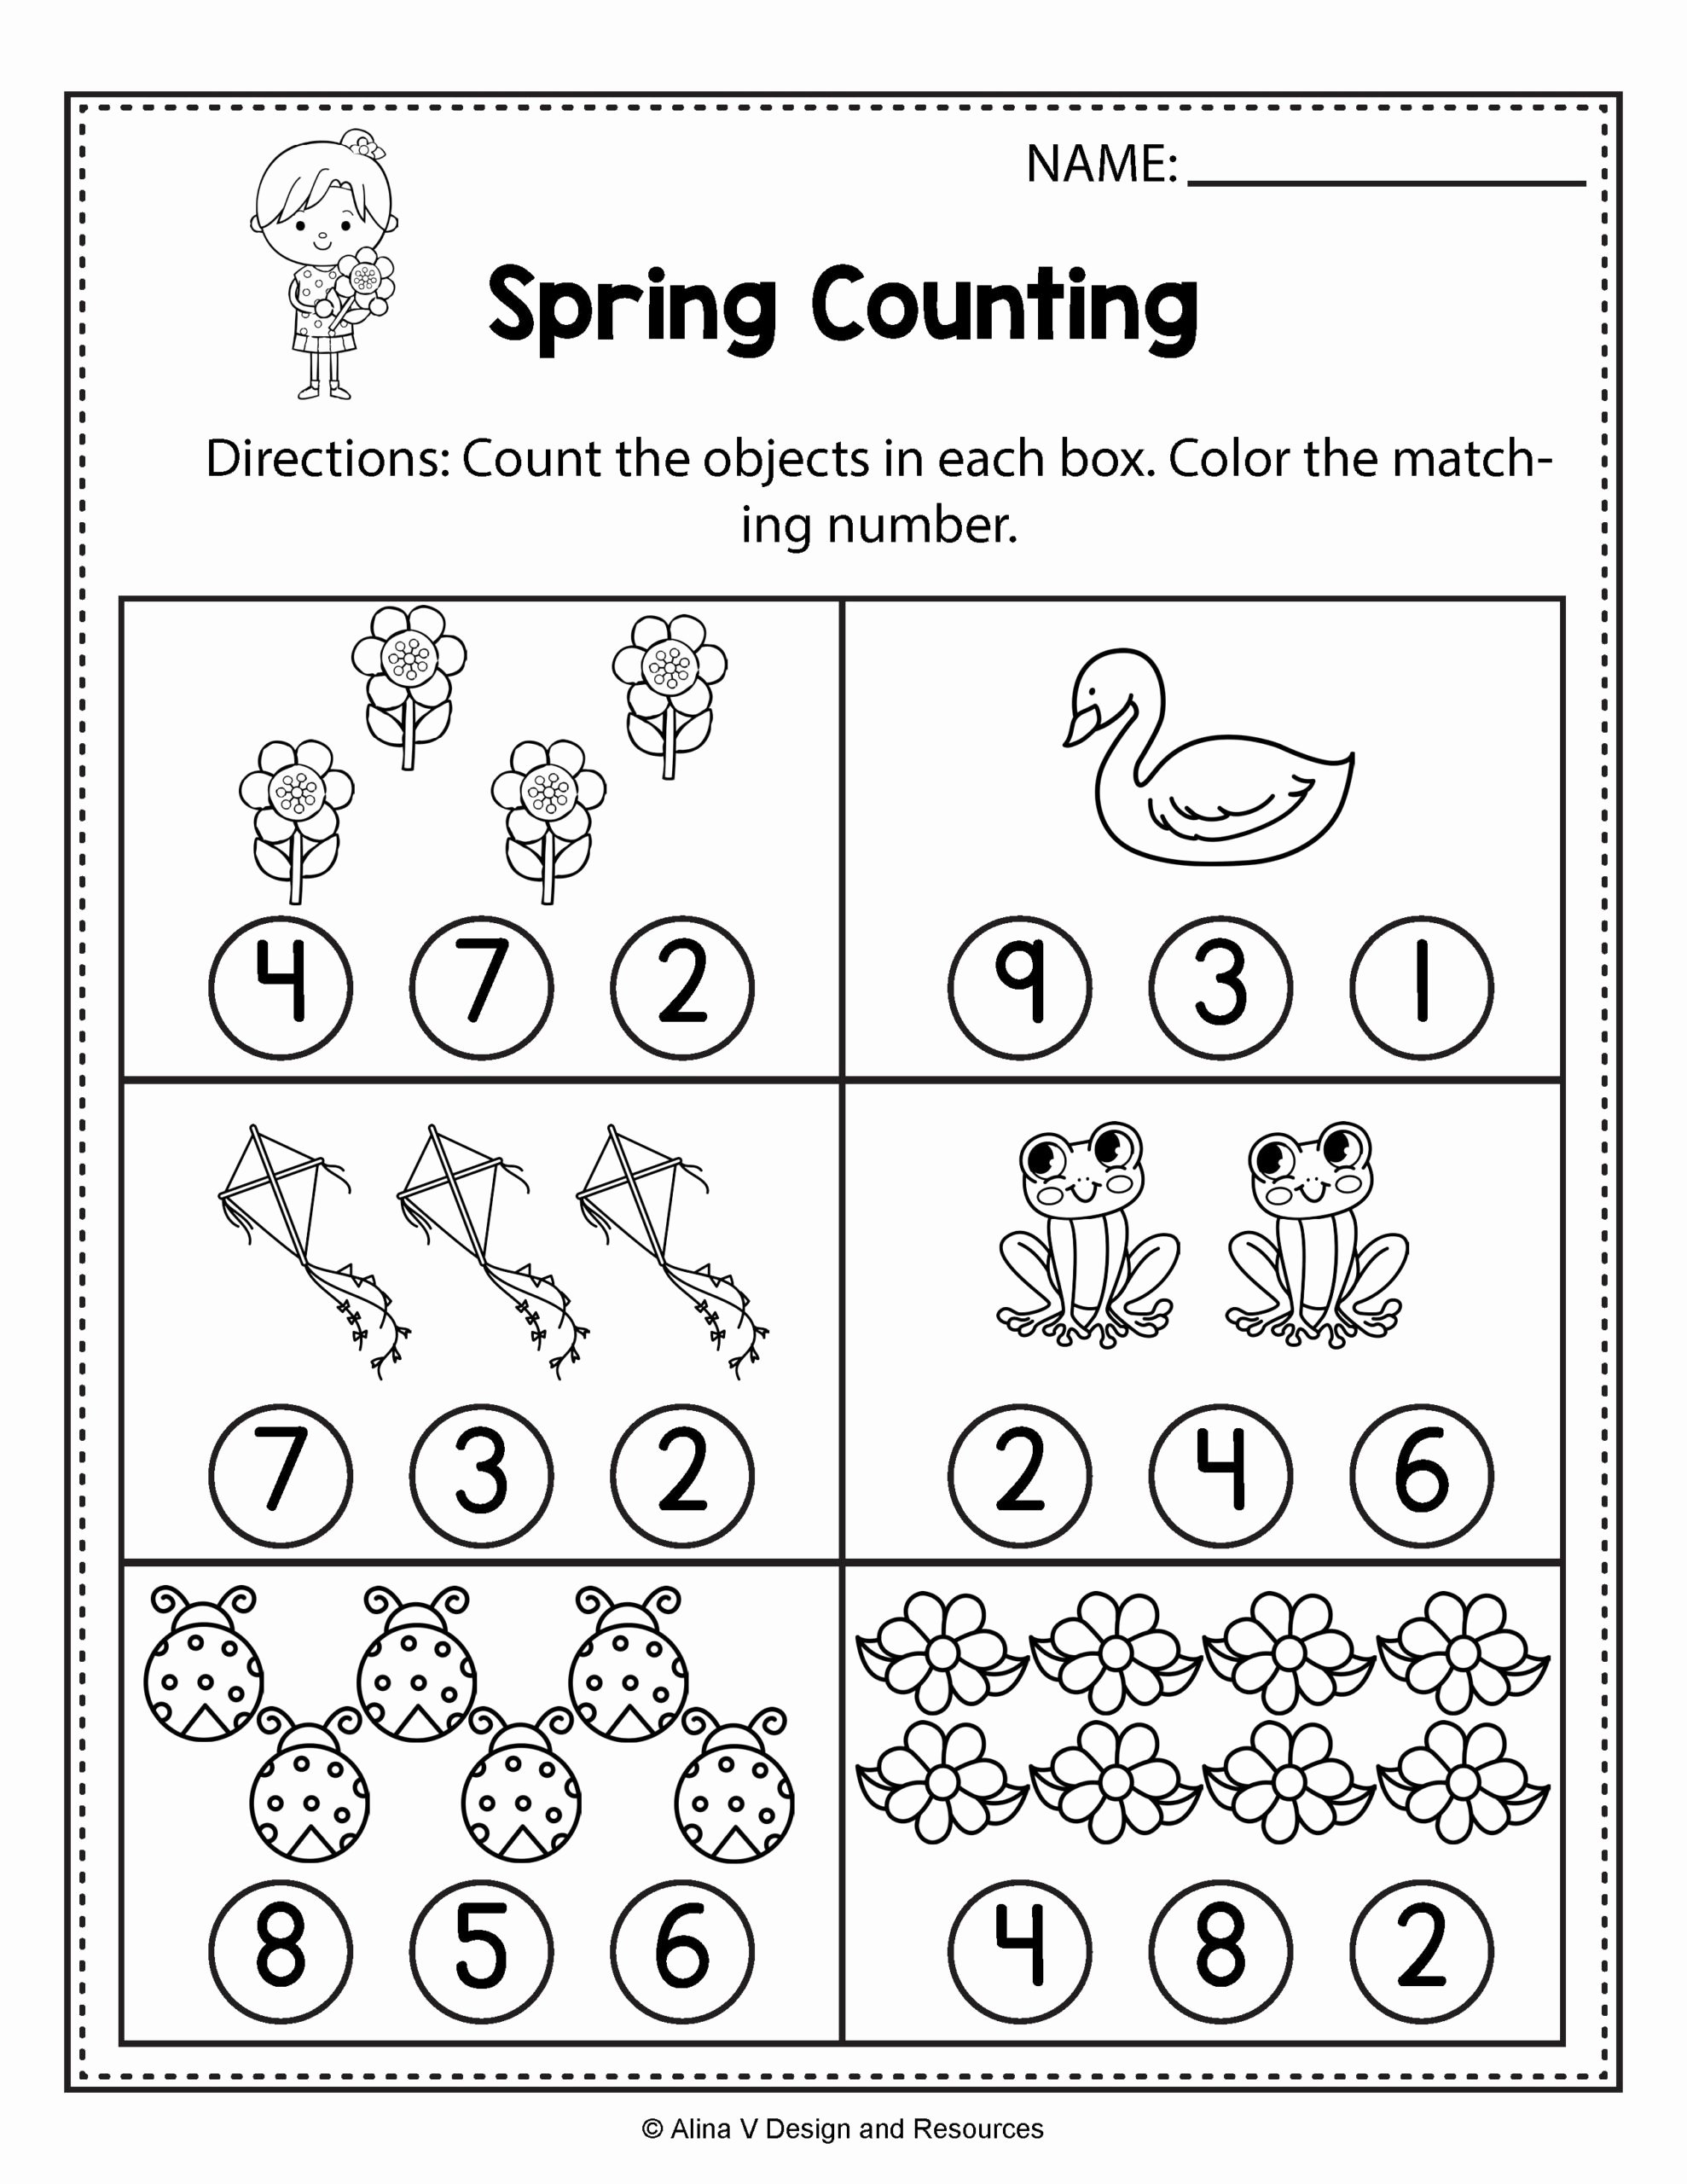 Spatial Concepts Worksheets for Preschoolers Inspirational Free Spring Preschool Worksheets Printable and Spatial